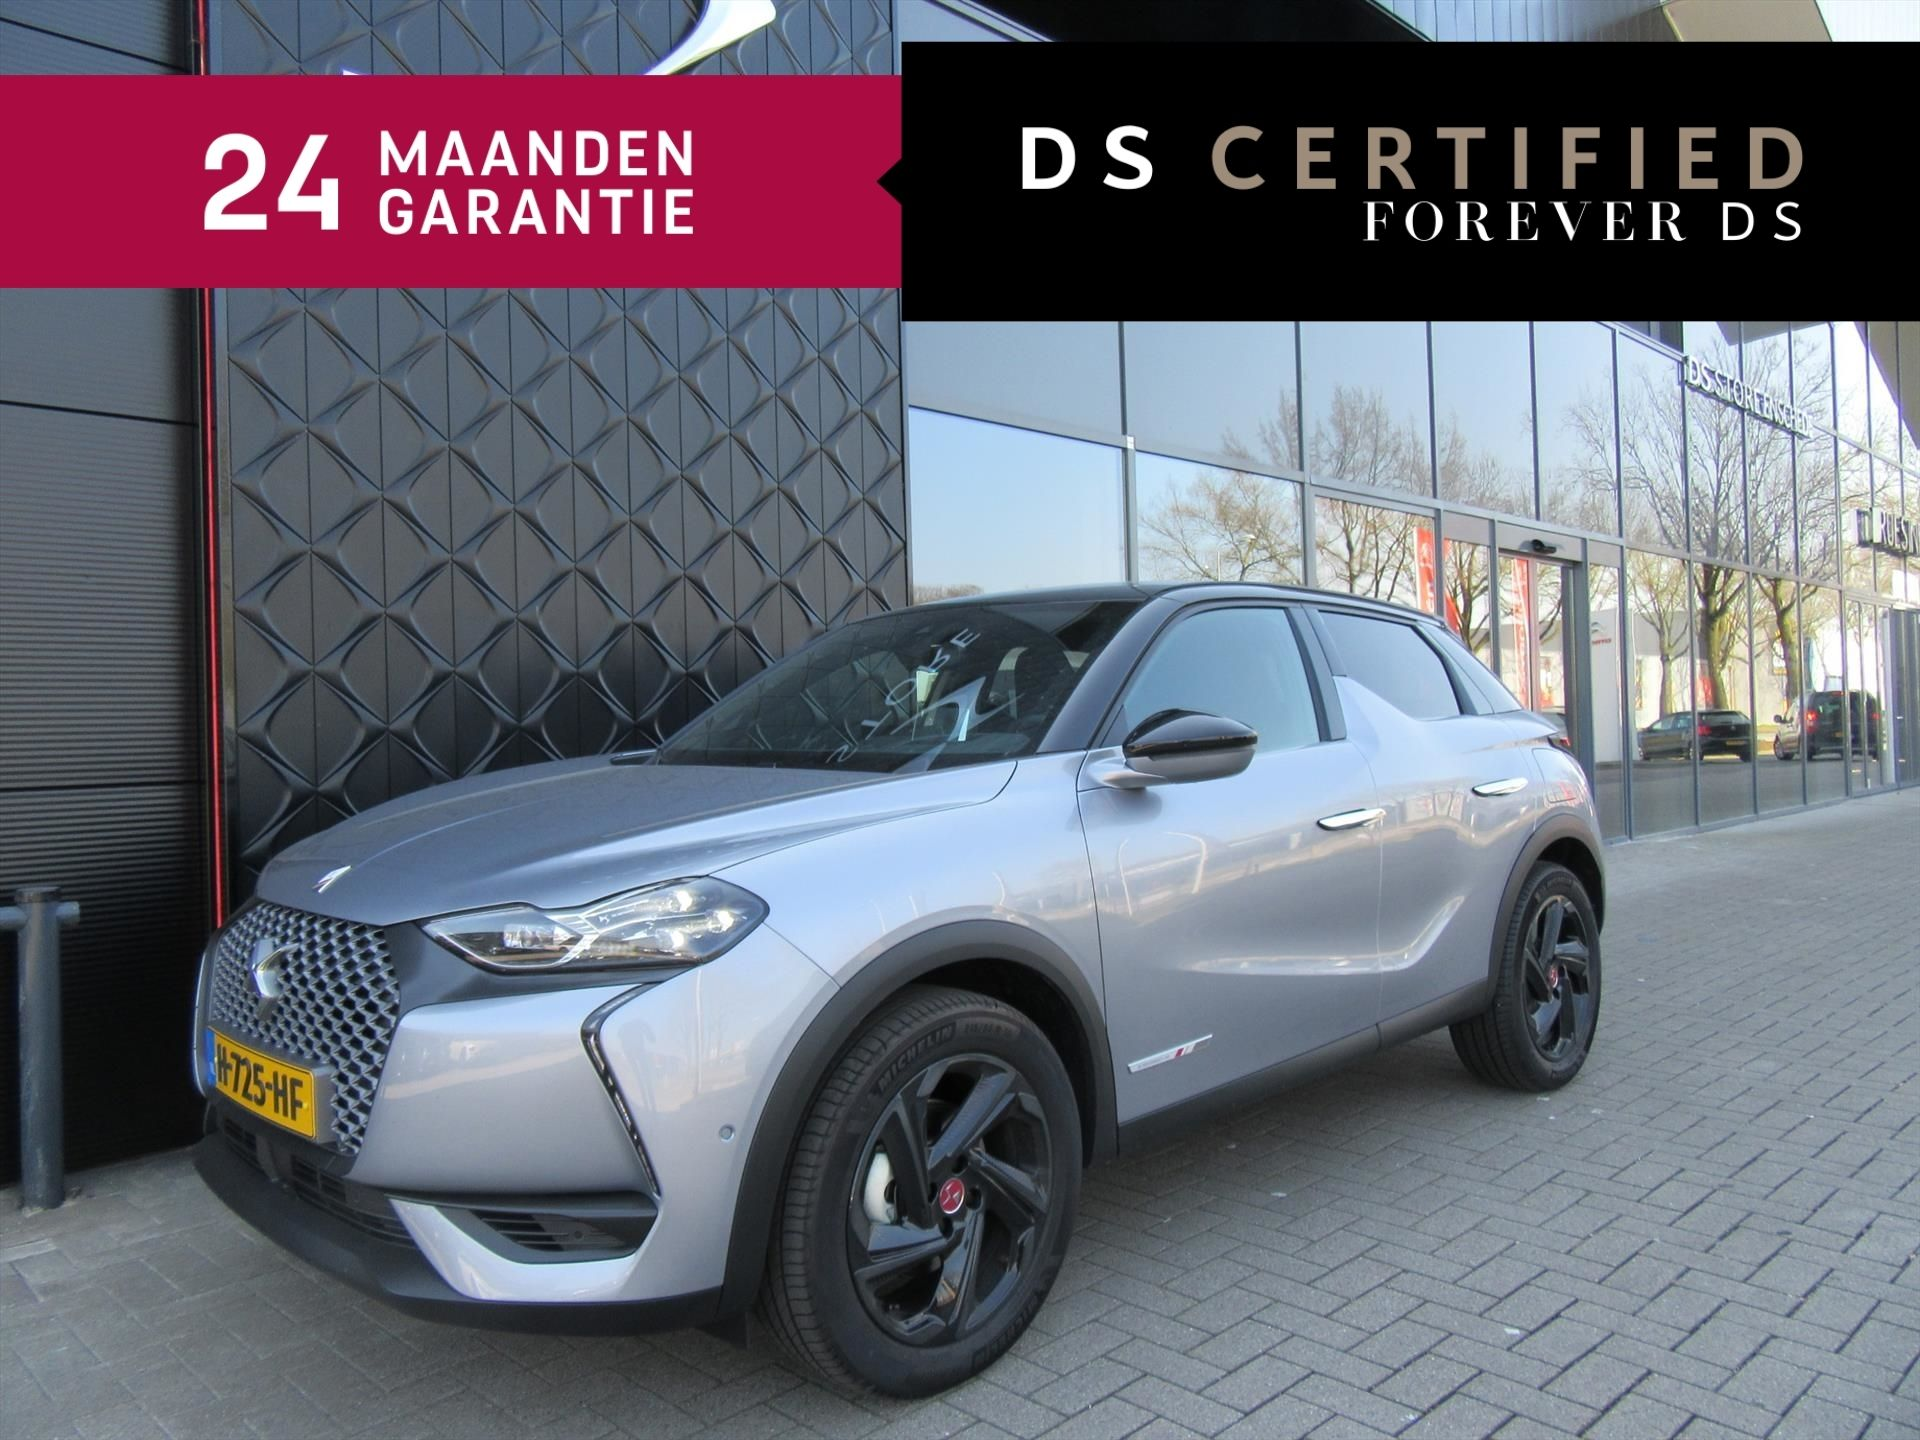 DS 3 Crossback E-TENSE 50 kWh Perf. Line FULL ELECTRIC LUXE!